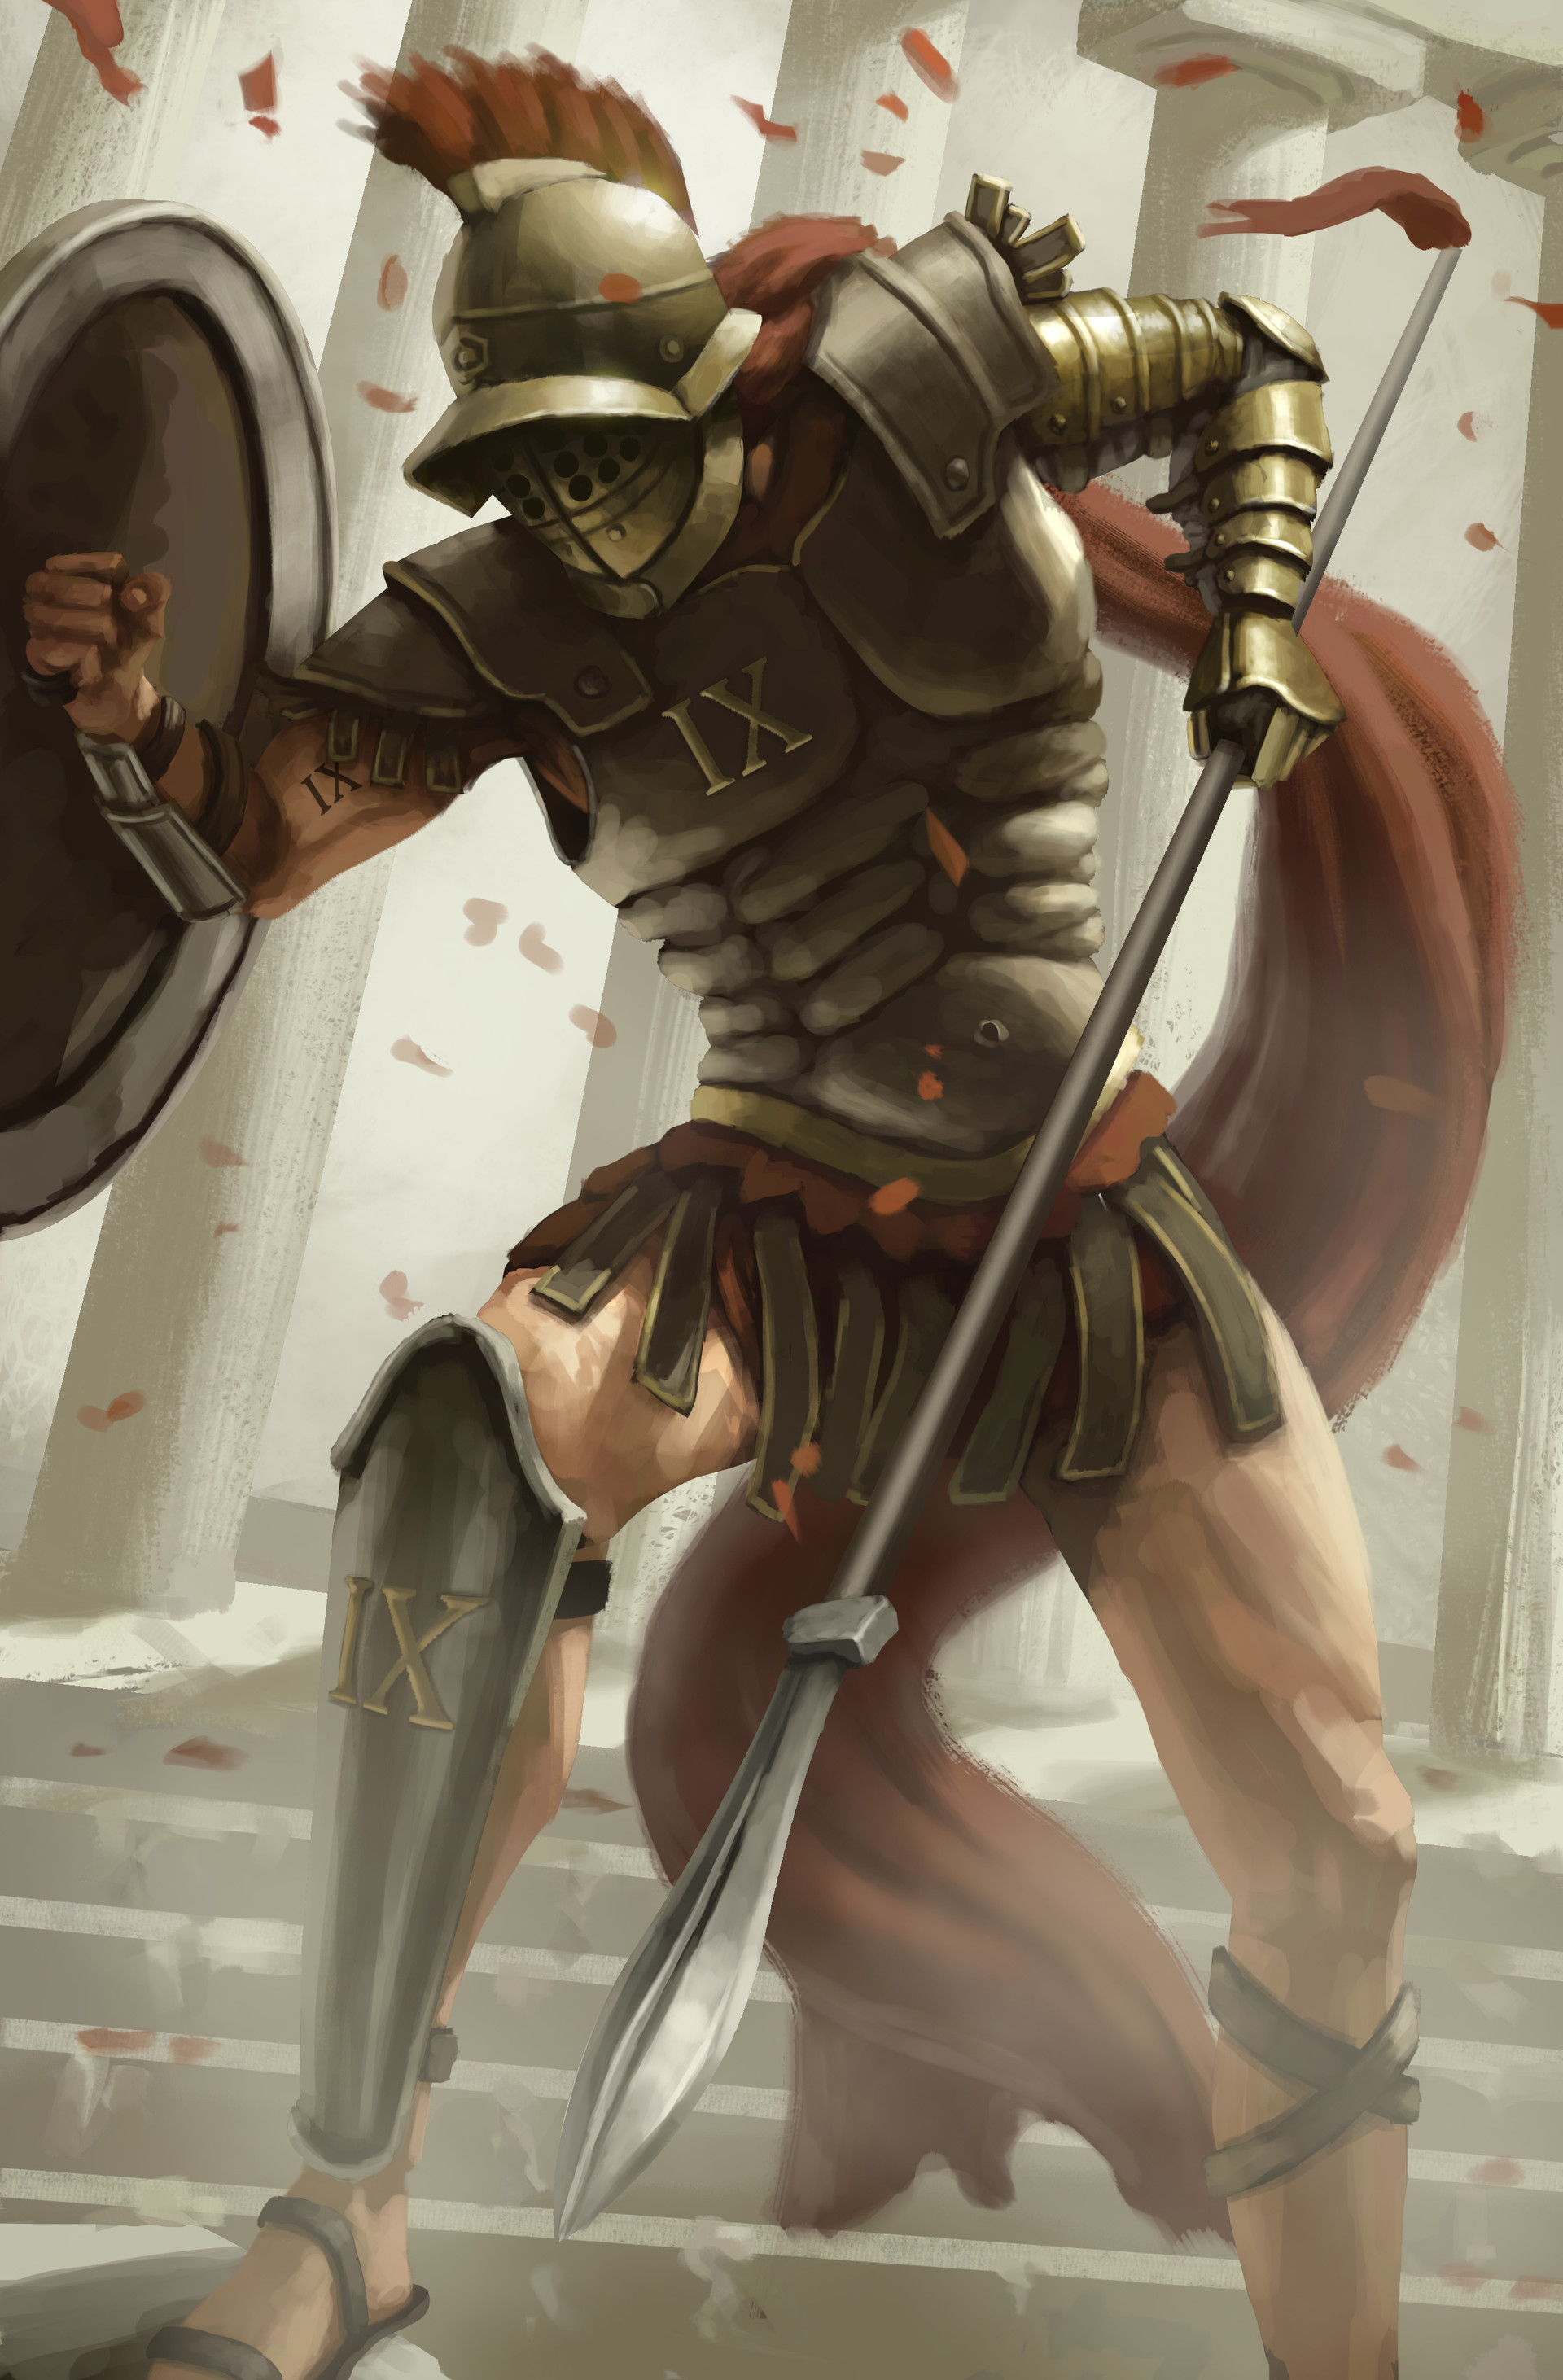 Morgan ketelaar jarass roman spear and shield highres